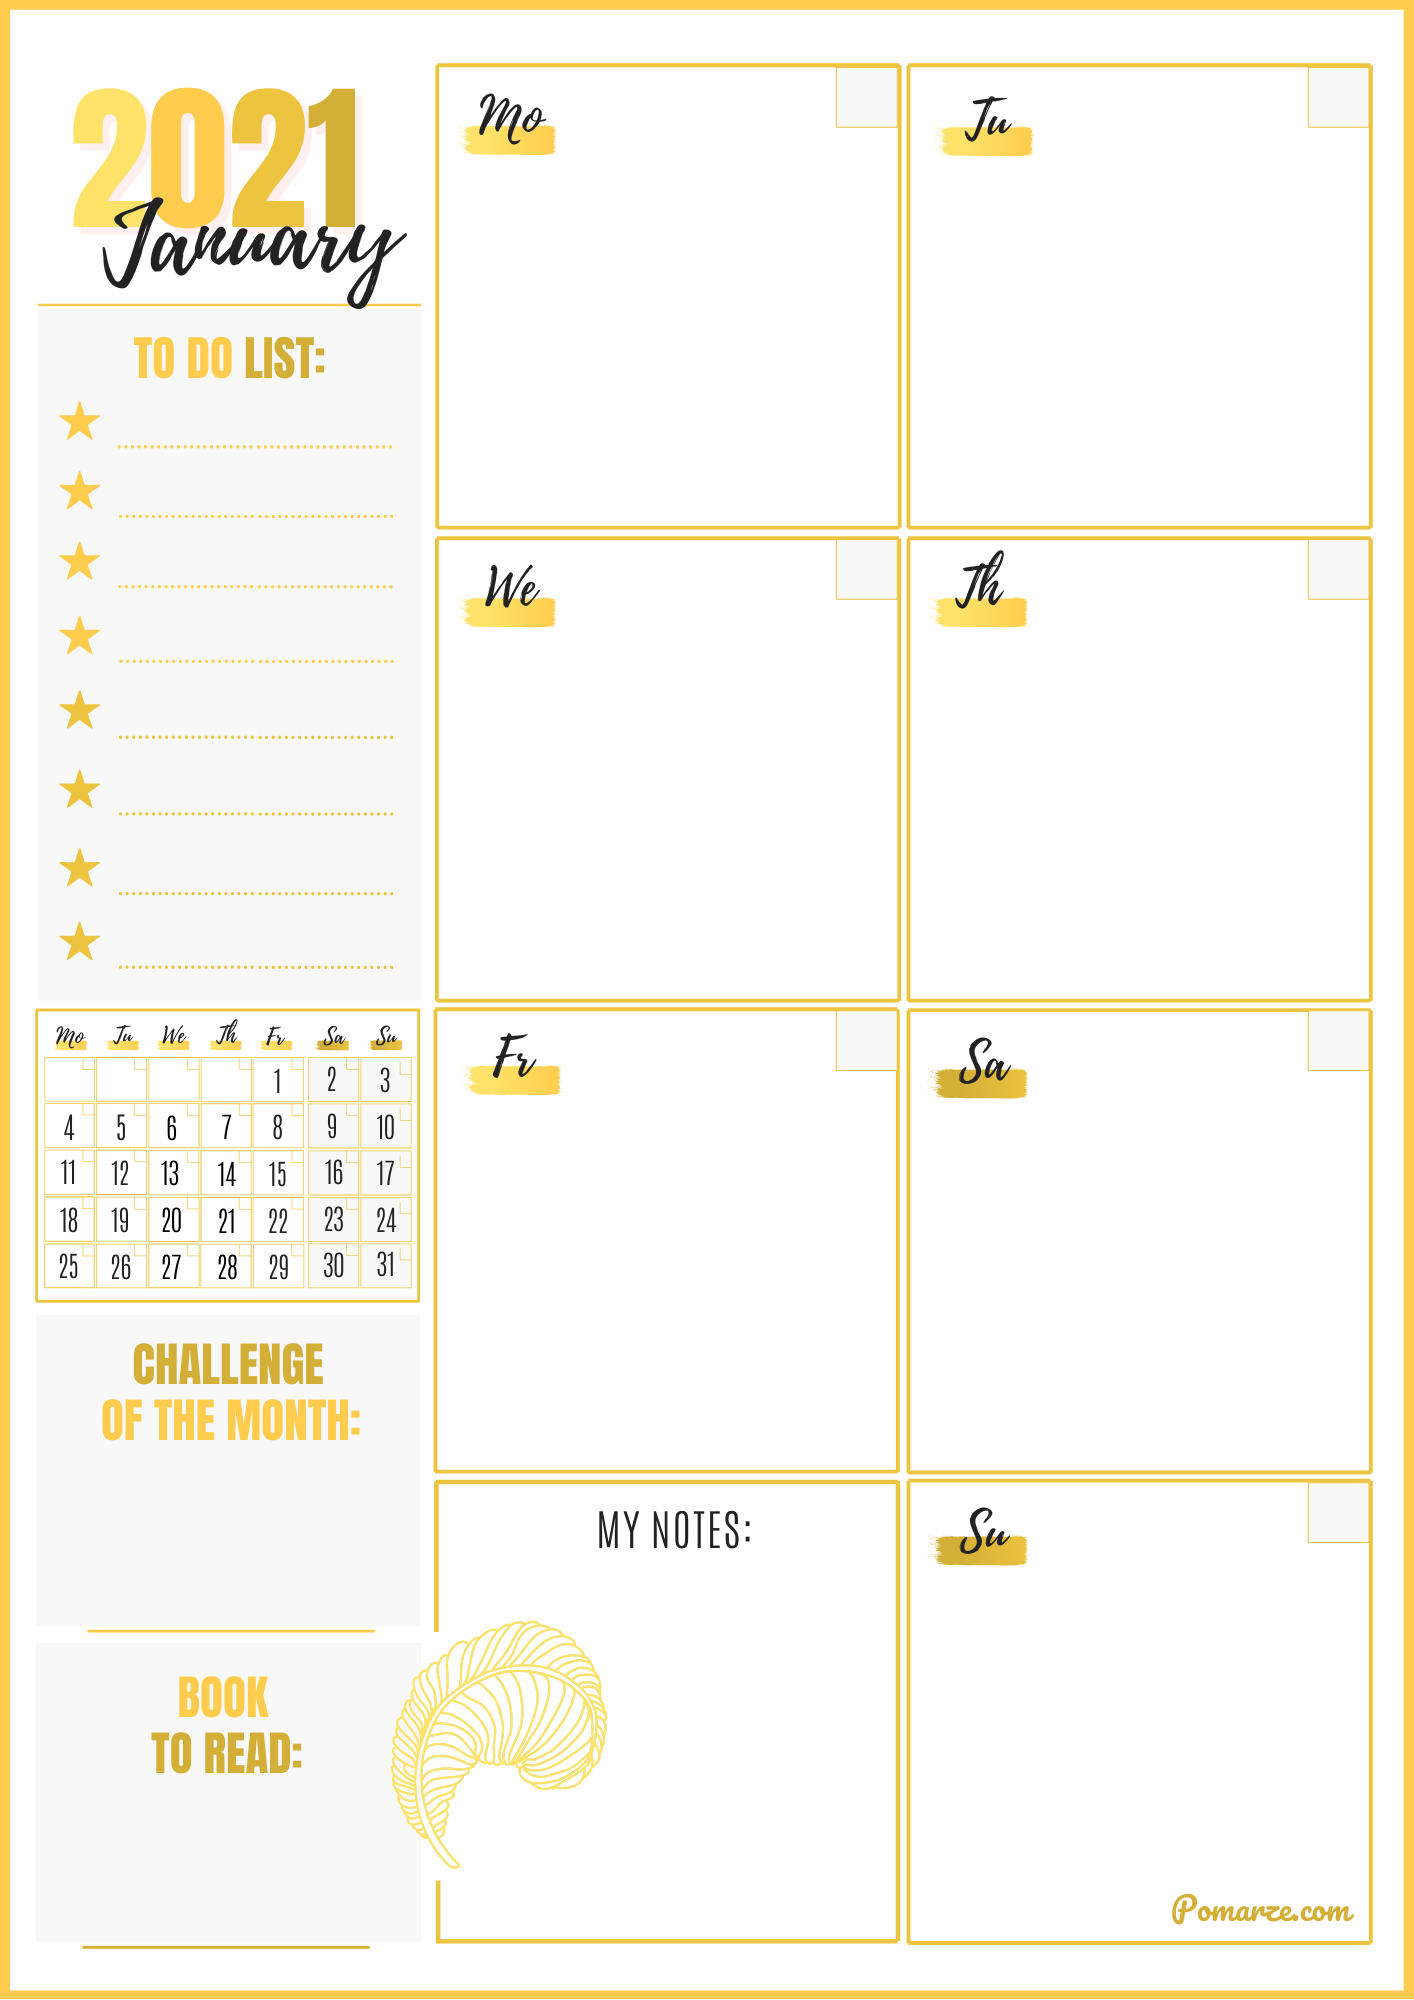 Weekly calendar planner January 2021 colour gold printable